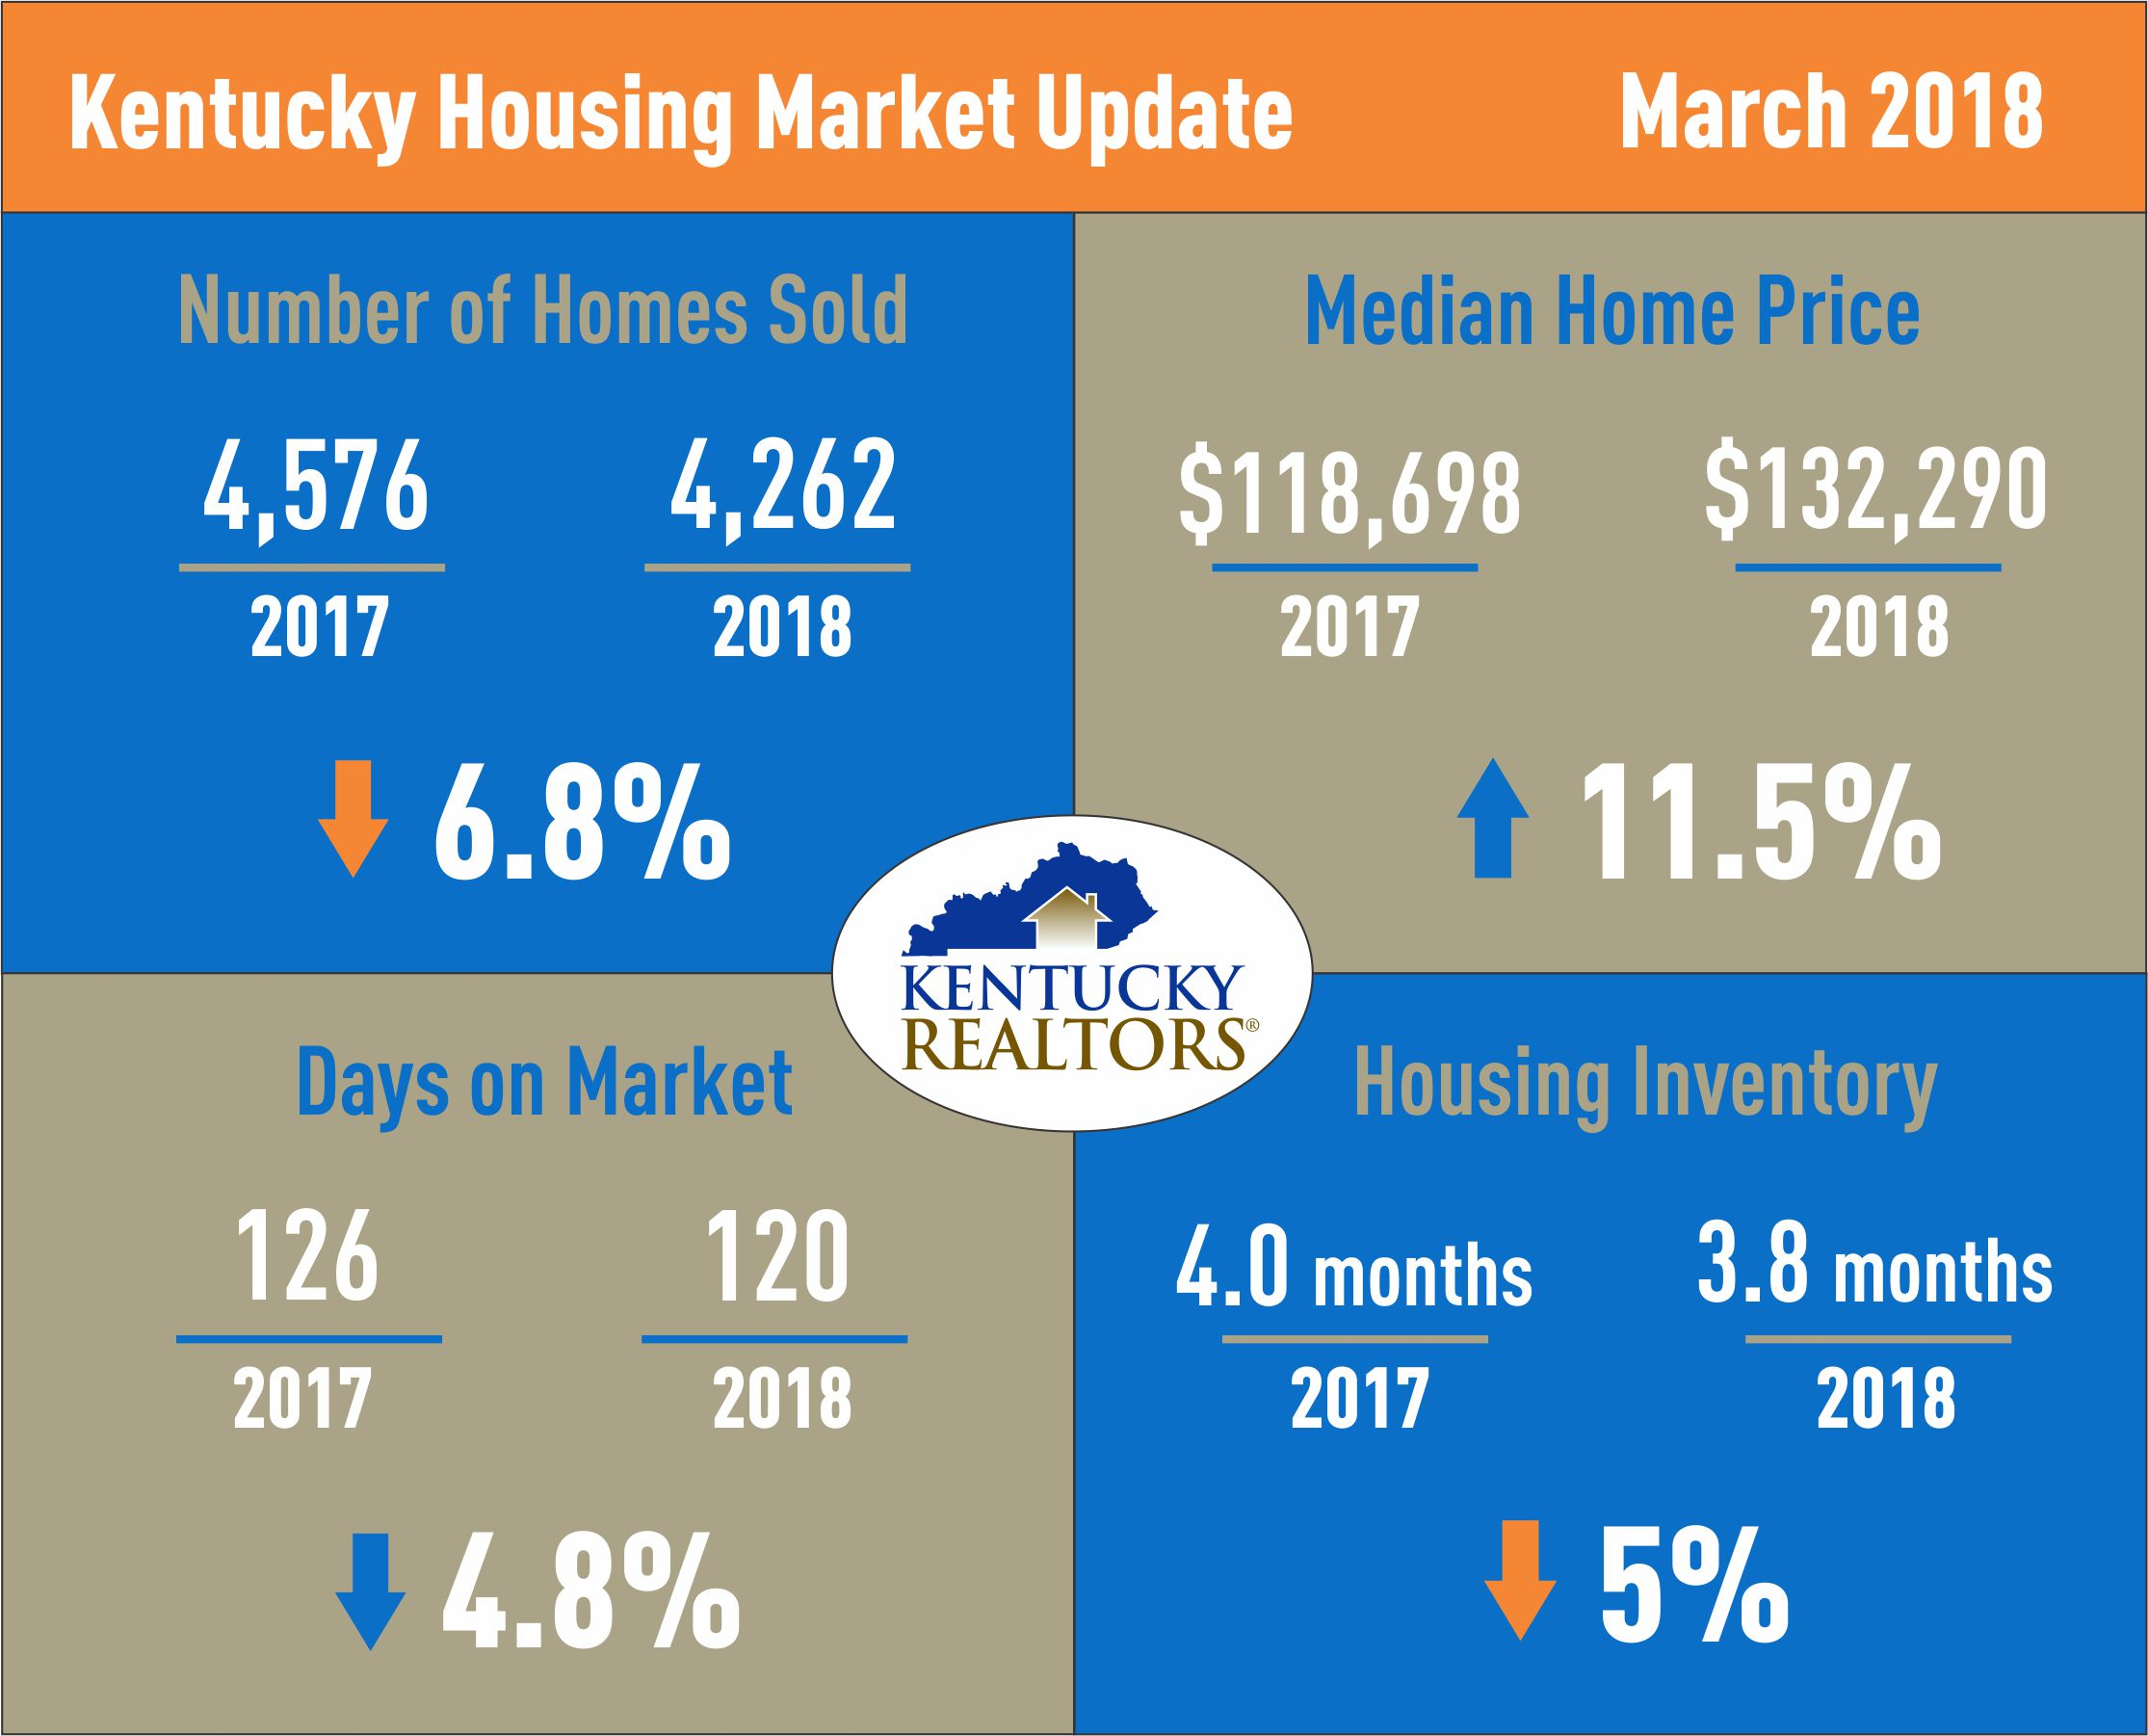 Kentucky Housing Market Update March 2018